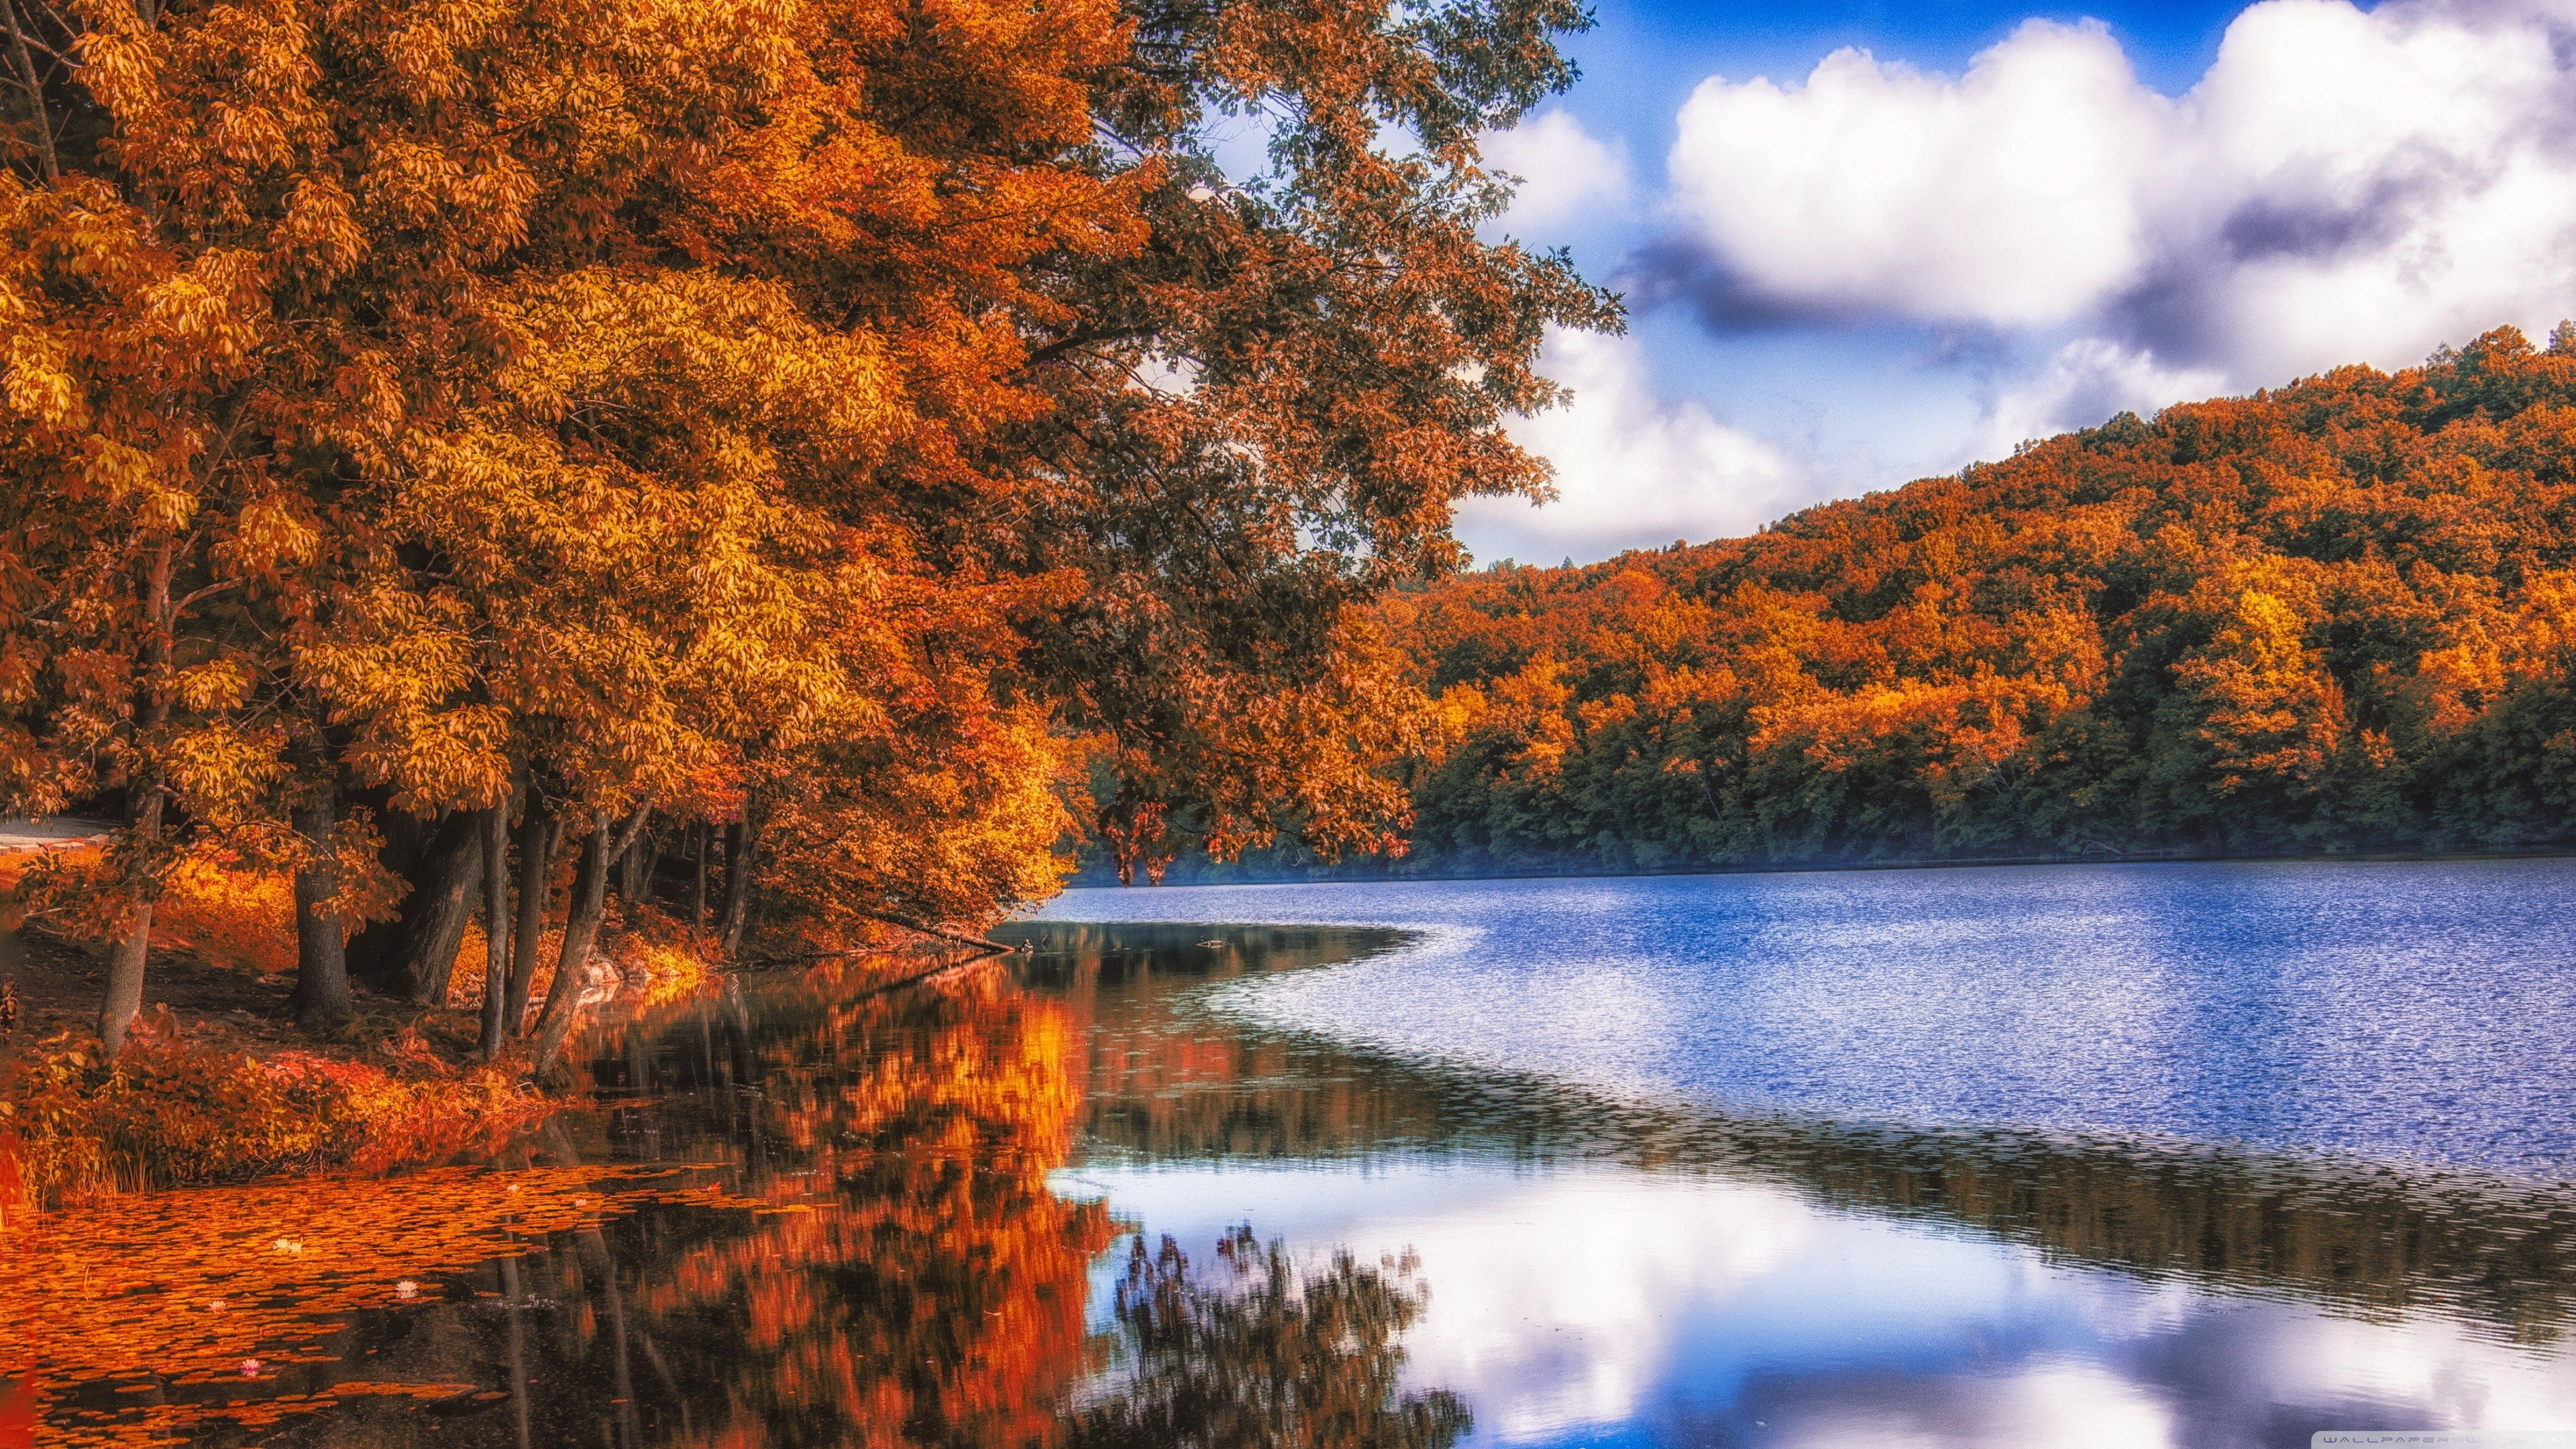 Fall Harvest Wallpaper 1024x768 Nature Forest River Wood Fall Blue Dead Trees Lake